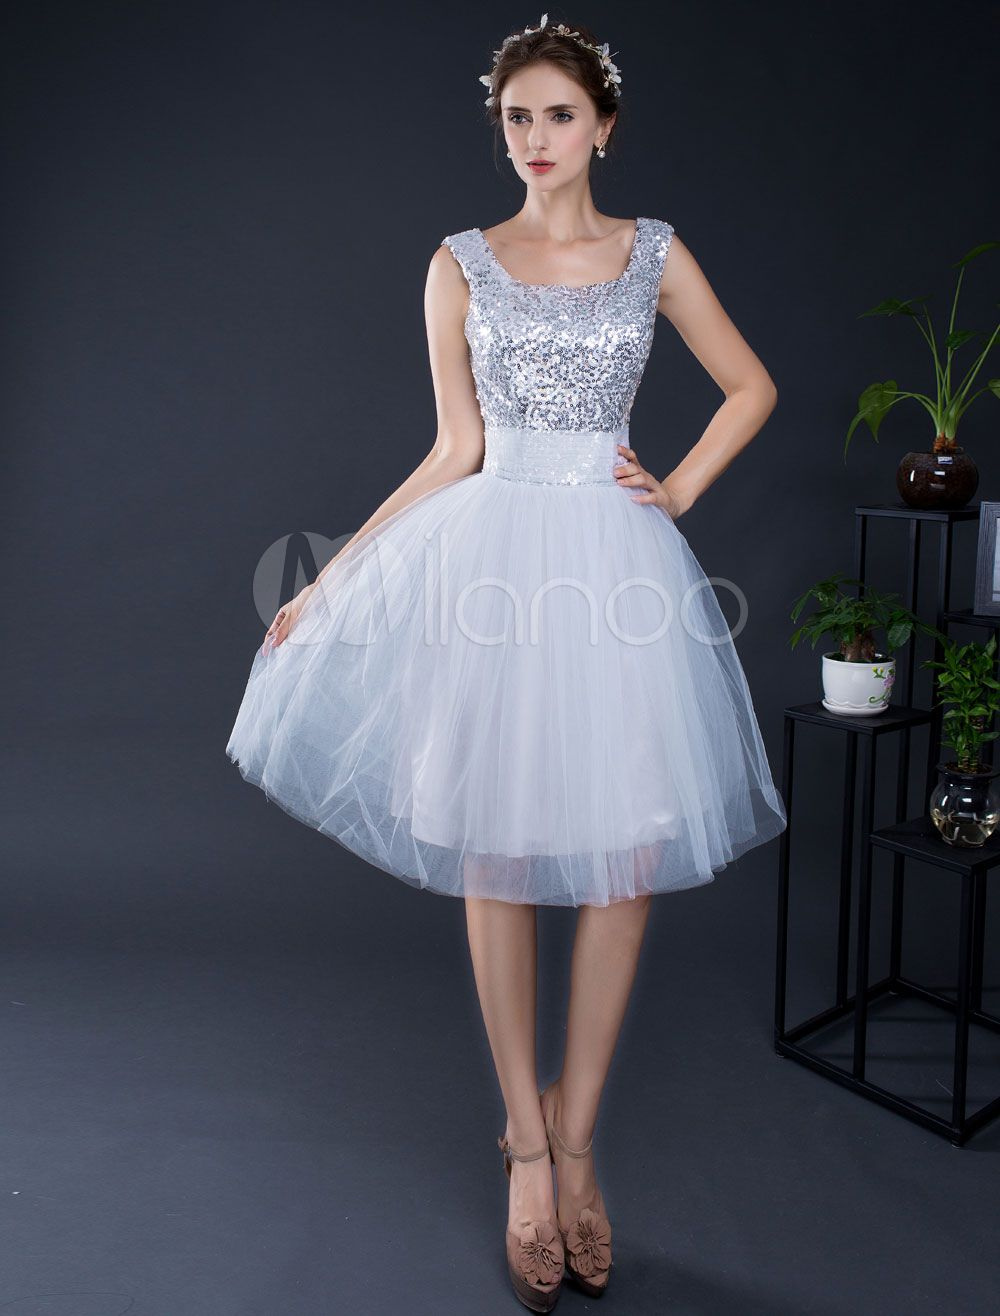 70a5ec3cb6 Short Prom Dress Sequin Tulle Homecoming Dress Lace-up Knee-length  Graduation Dress